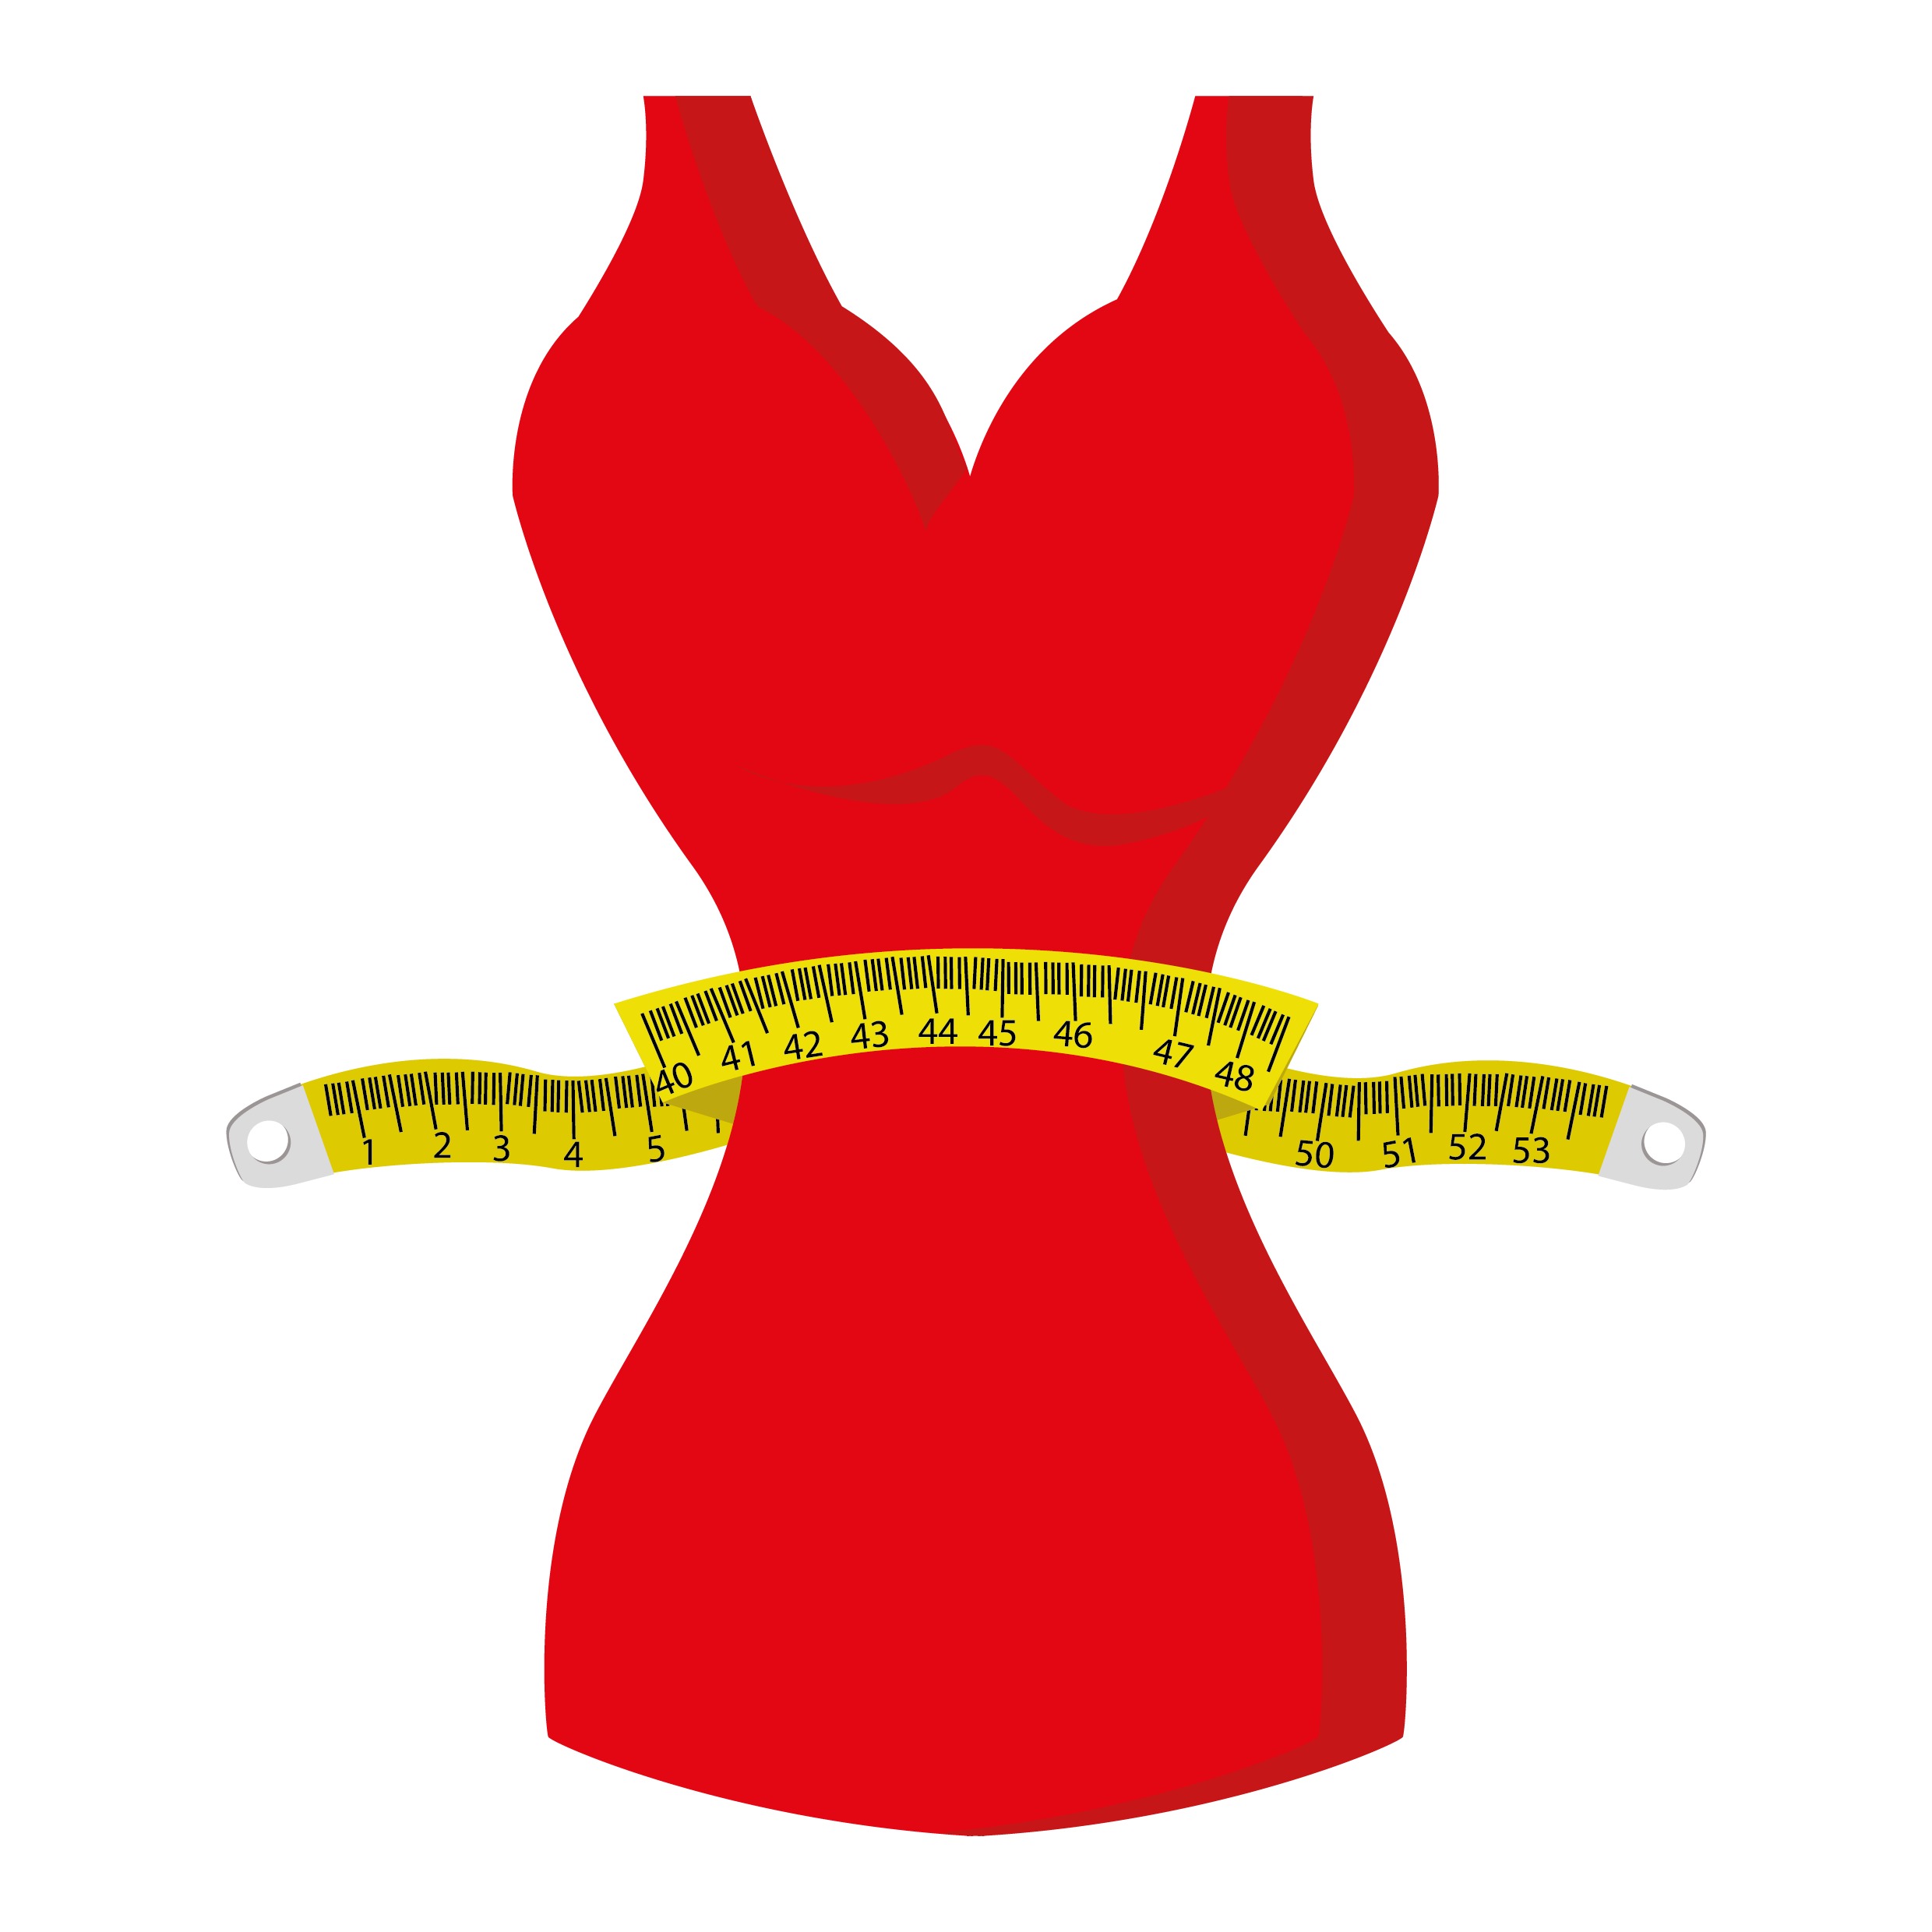 the hourglass body workout bewellbuzz hourglass clipart free hourglass clipart free